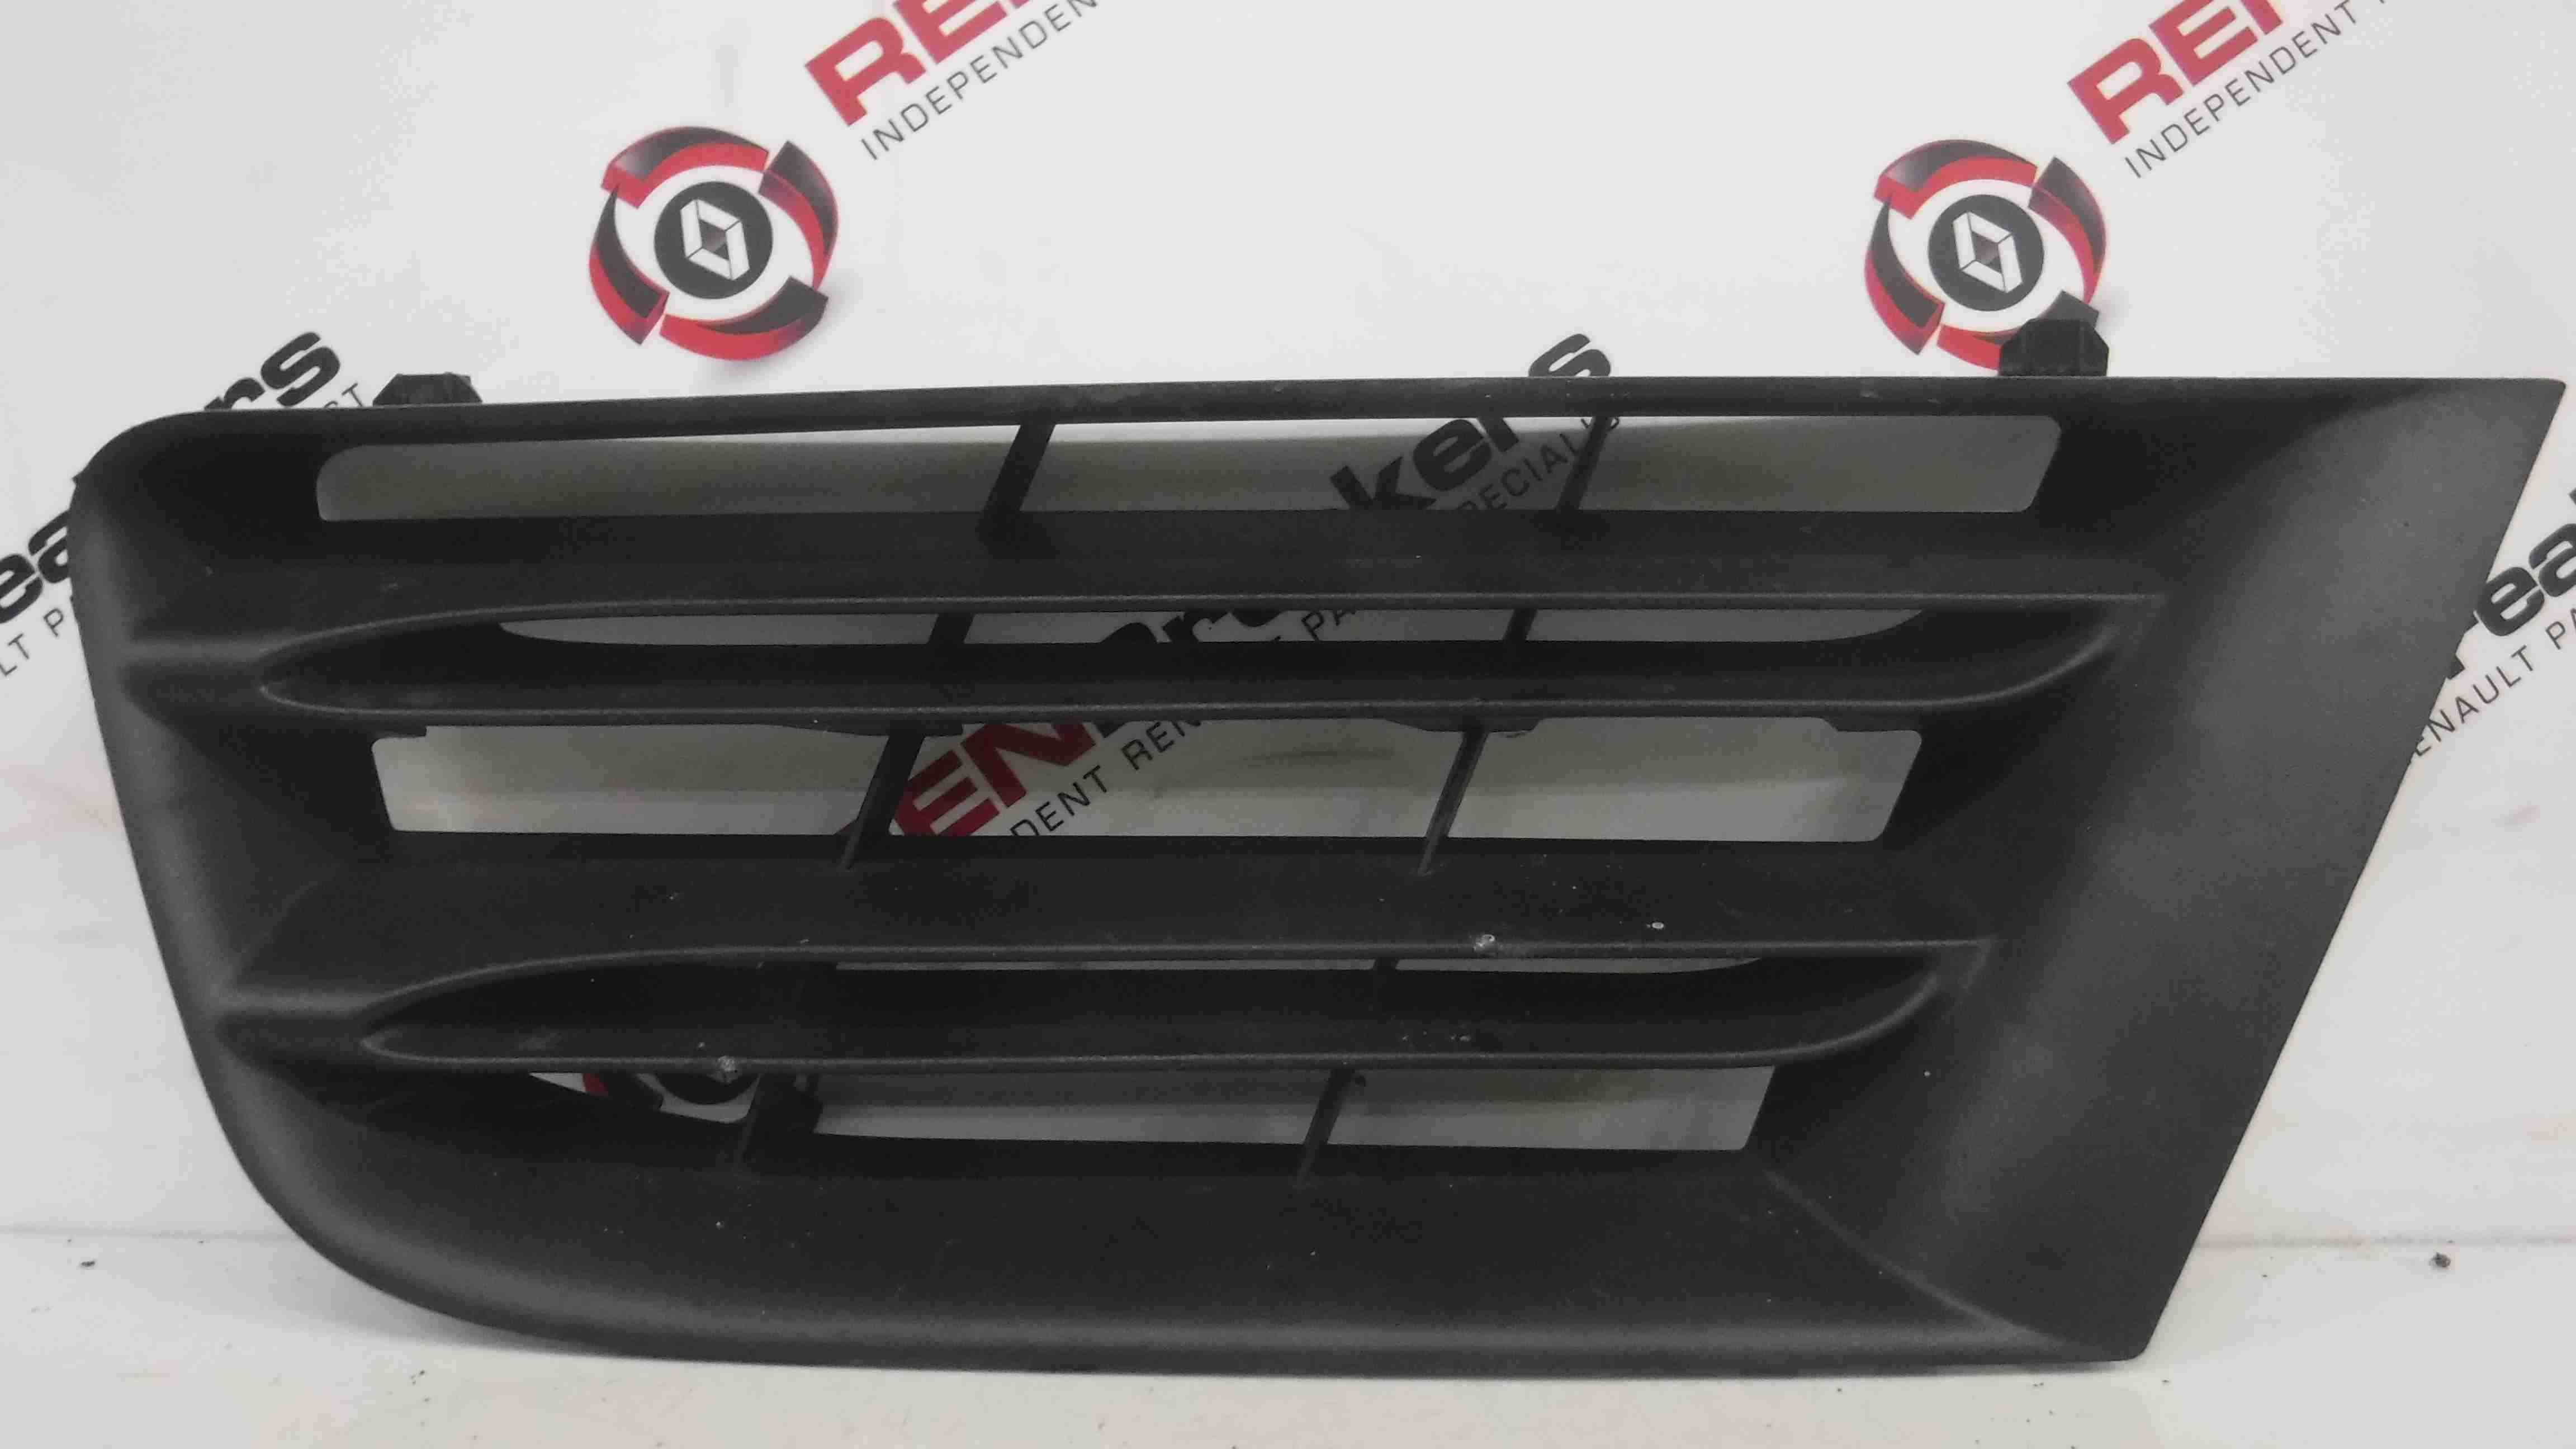 Renault Scenic 2006-2009 Passenger NSF Front Bumper Grill Grille Insert 1013577